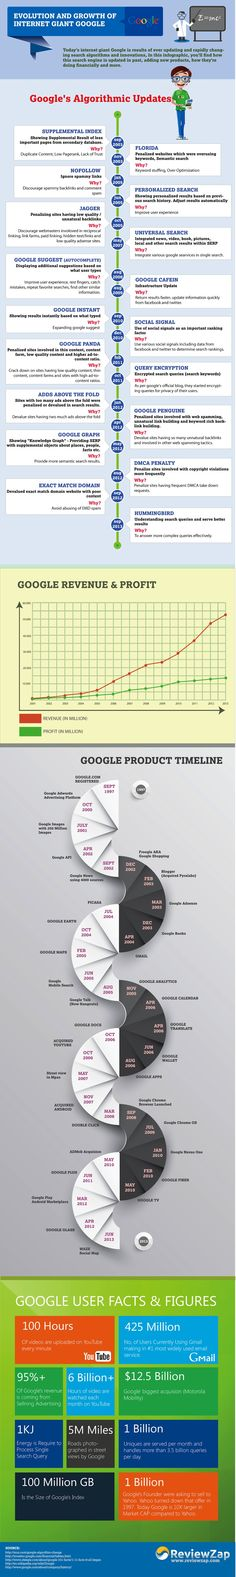 Google Inc. (GOOG) Search Receives 3.5 Billion Queries Every Day: